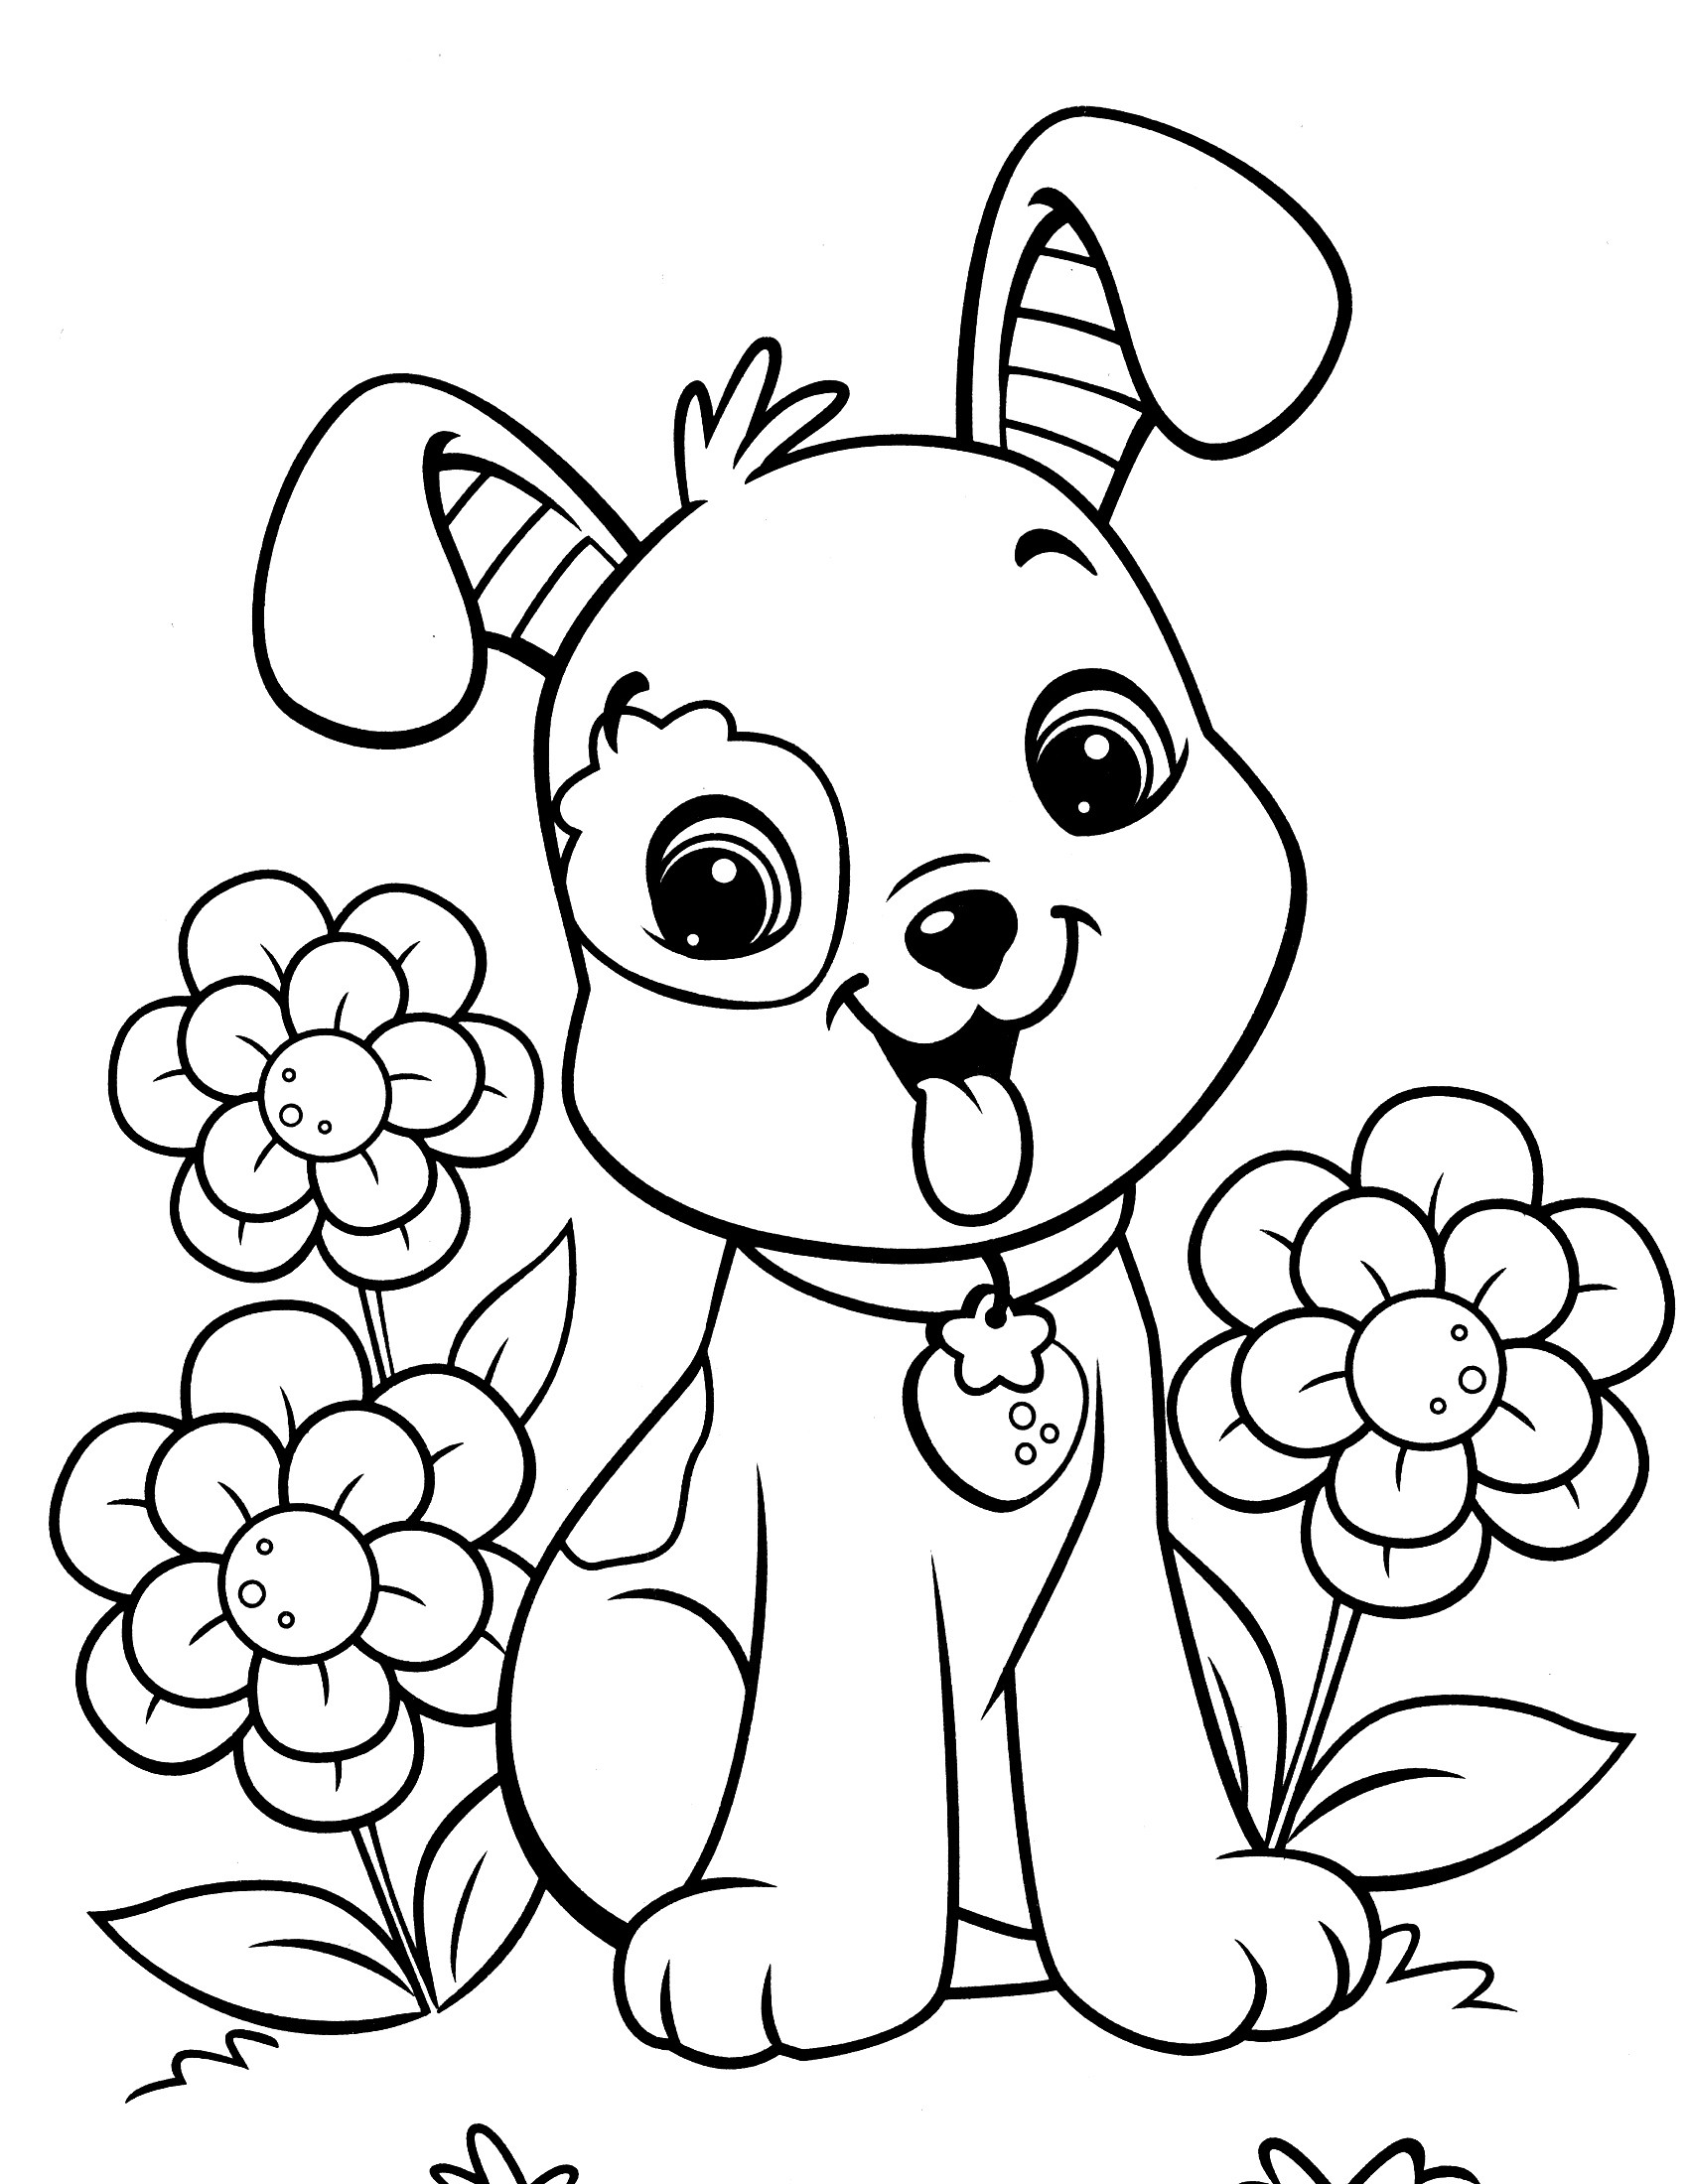 Full Page Printable Coloring Pages Ideas Art Dogs Dog Downloadree Books Of  Phenomenal – Refugiodeesperanza